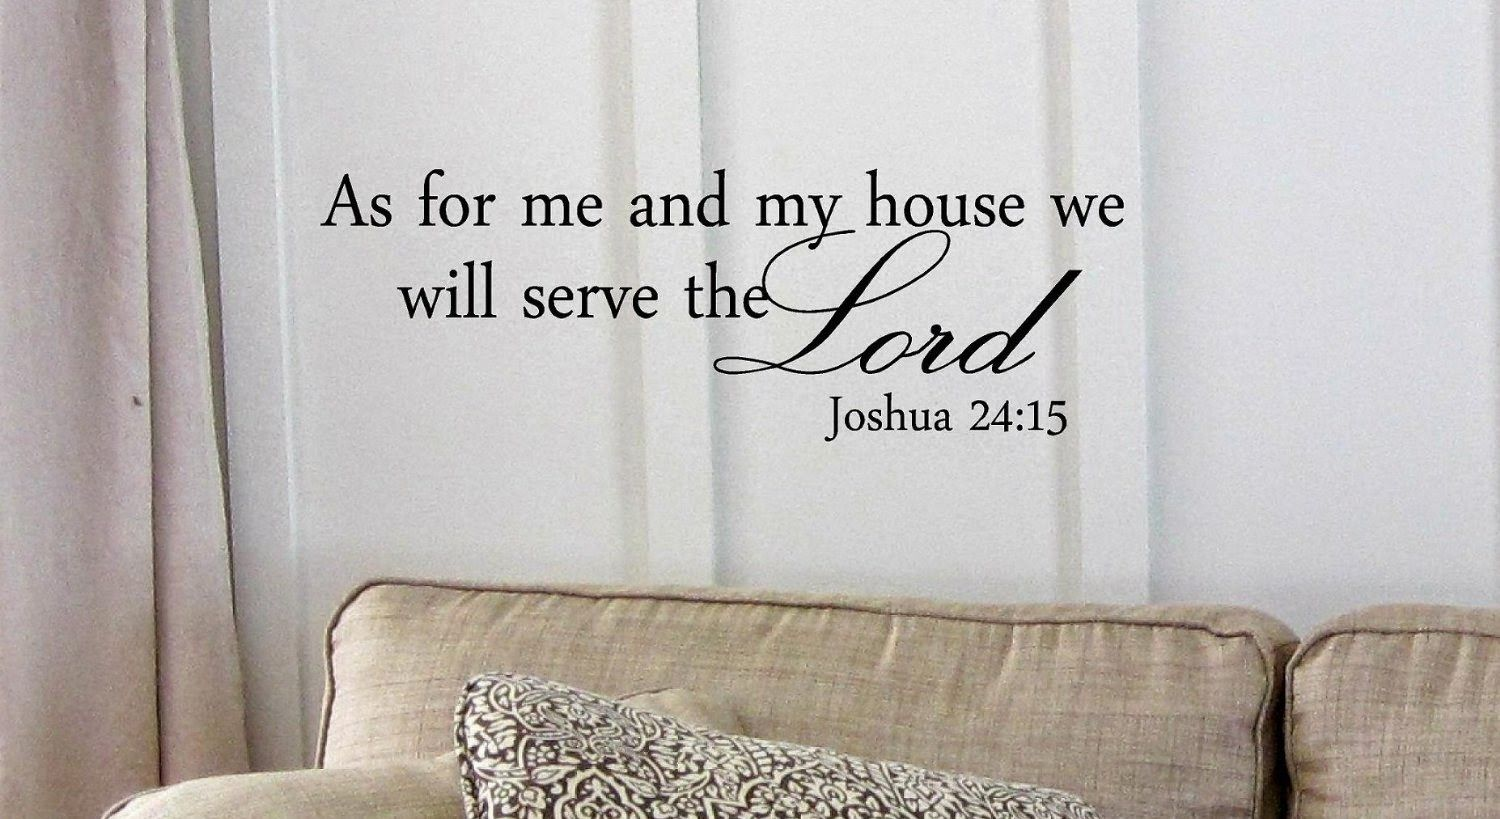 Wall Decals at Dollar Tree and Amazon - easy and cheap way to decorate! (Joshua 24:15)